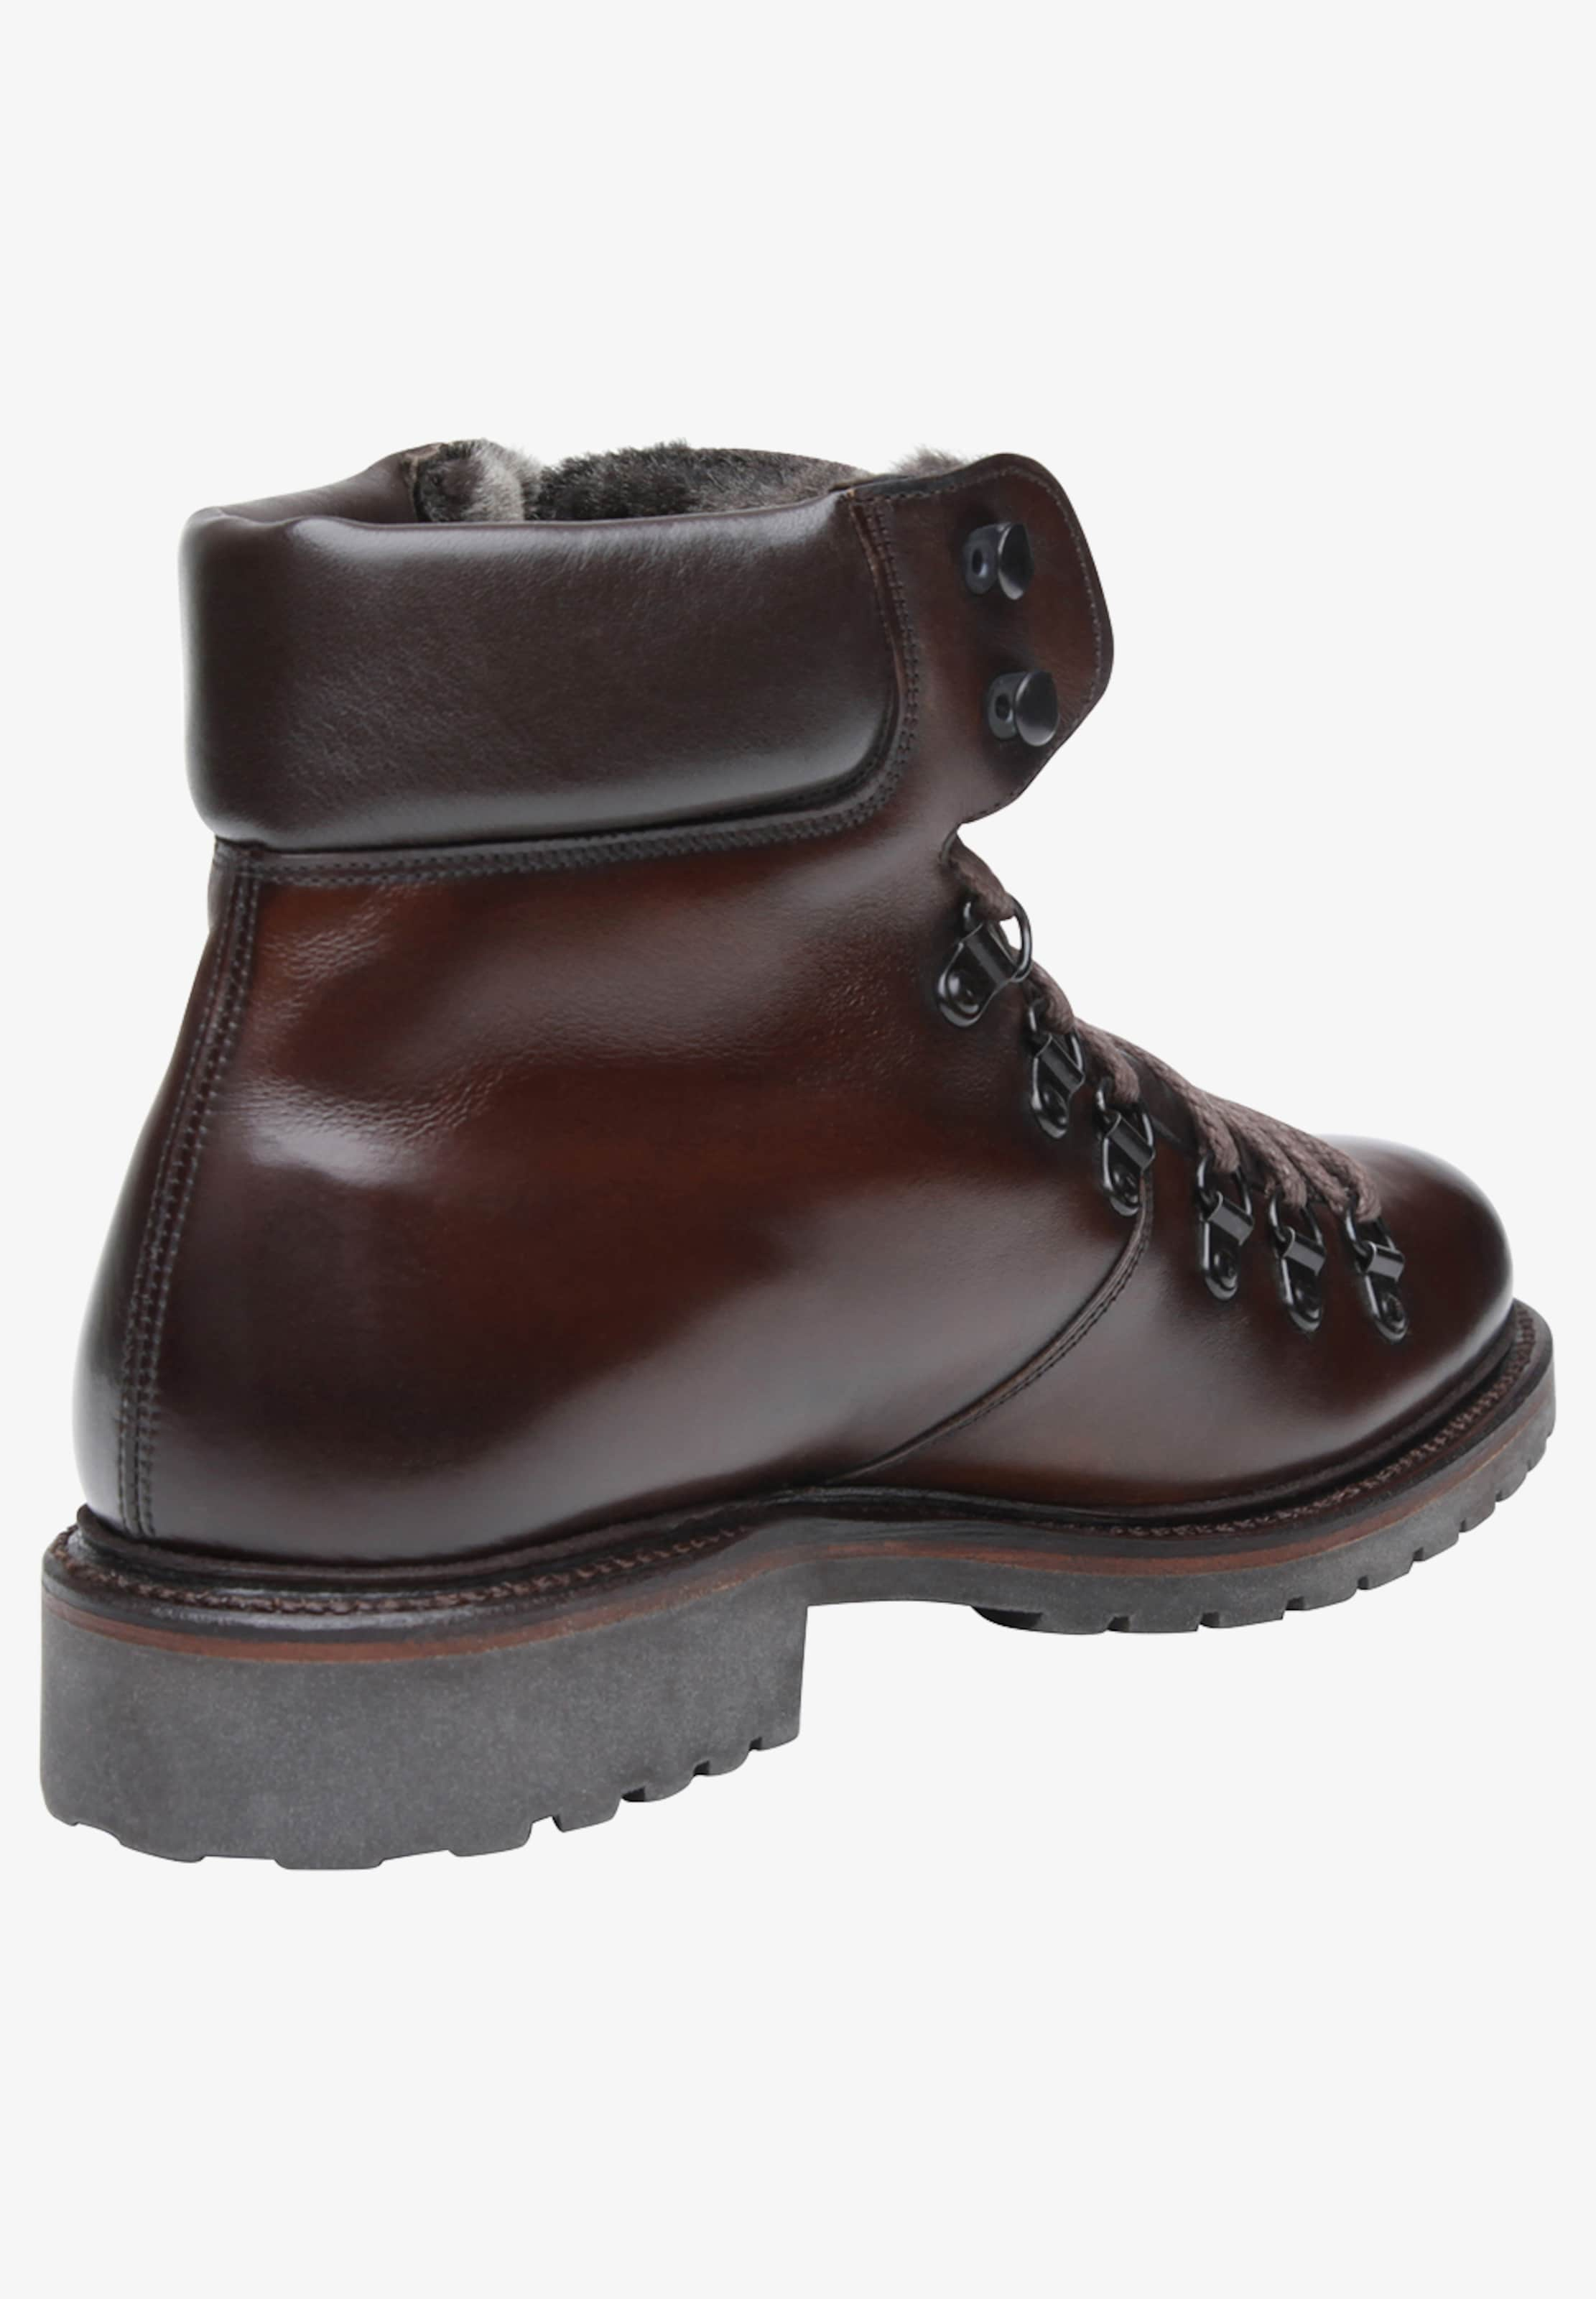 In Shoepassion 'no688' Kastanienbraun Winterboots 2HIED9